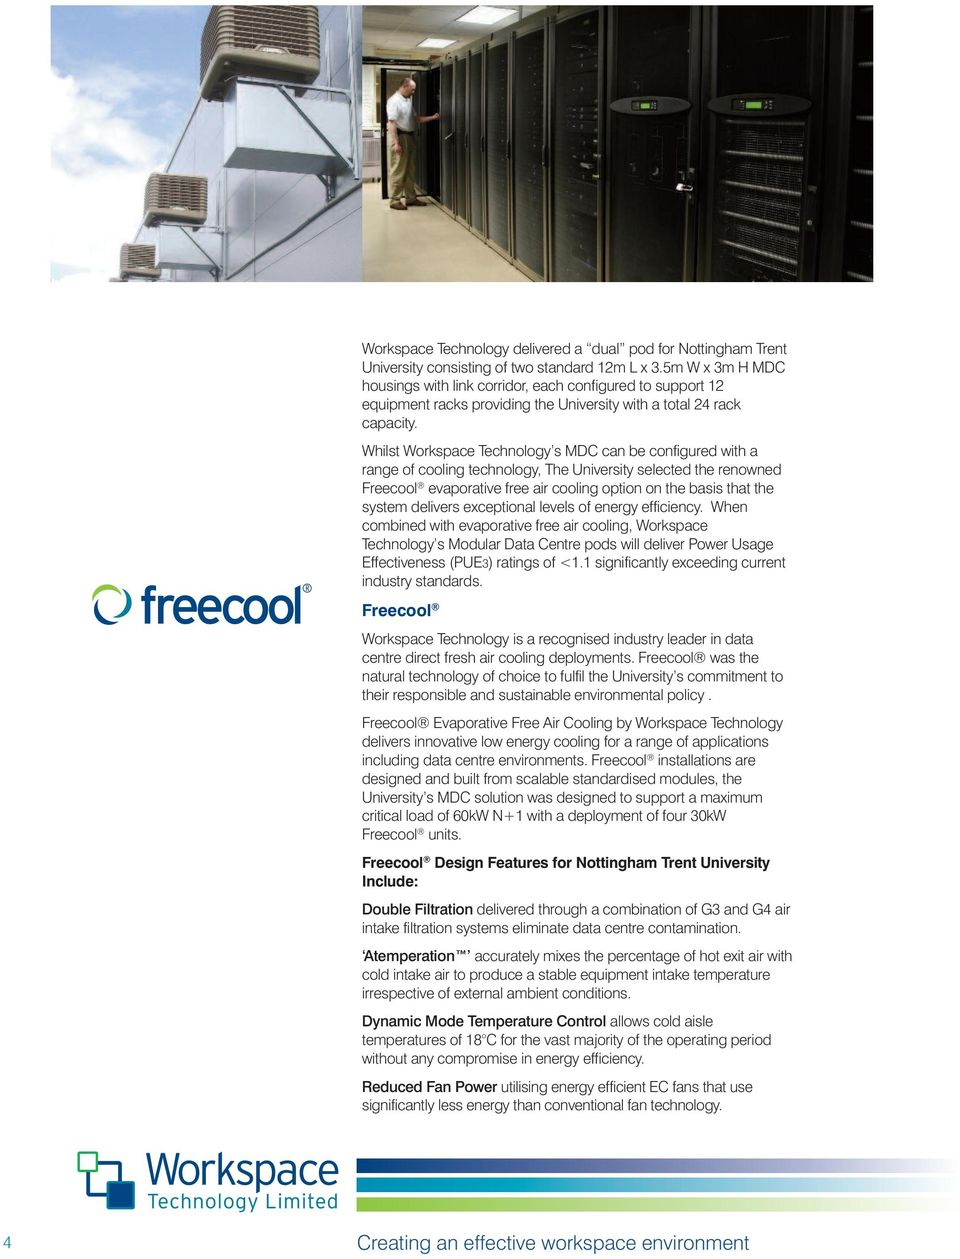 Whilst Workspace Technology s MDC can be configured with a range of cooling technology, The University selected the renowned Freecool evaporative free air cooling option on the basis that the system